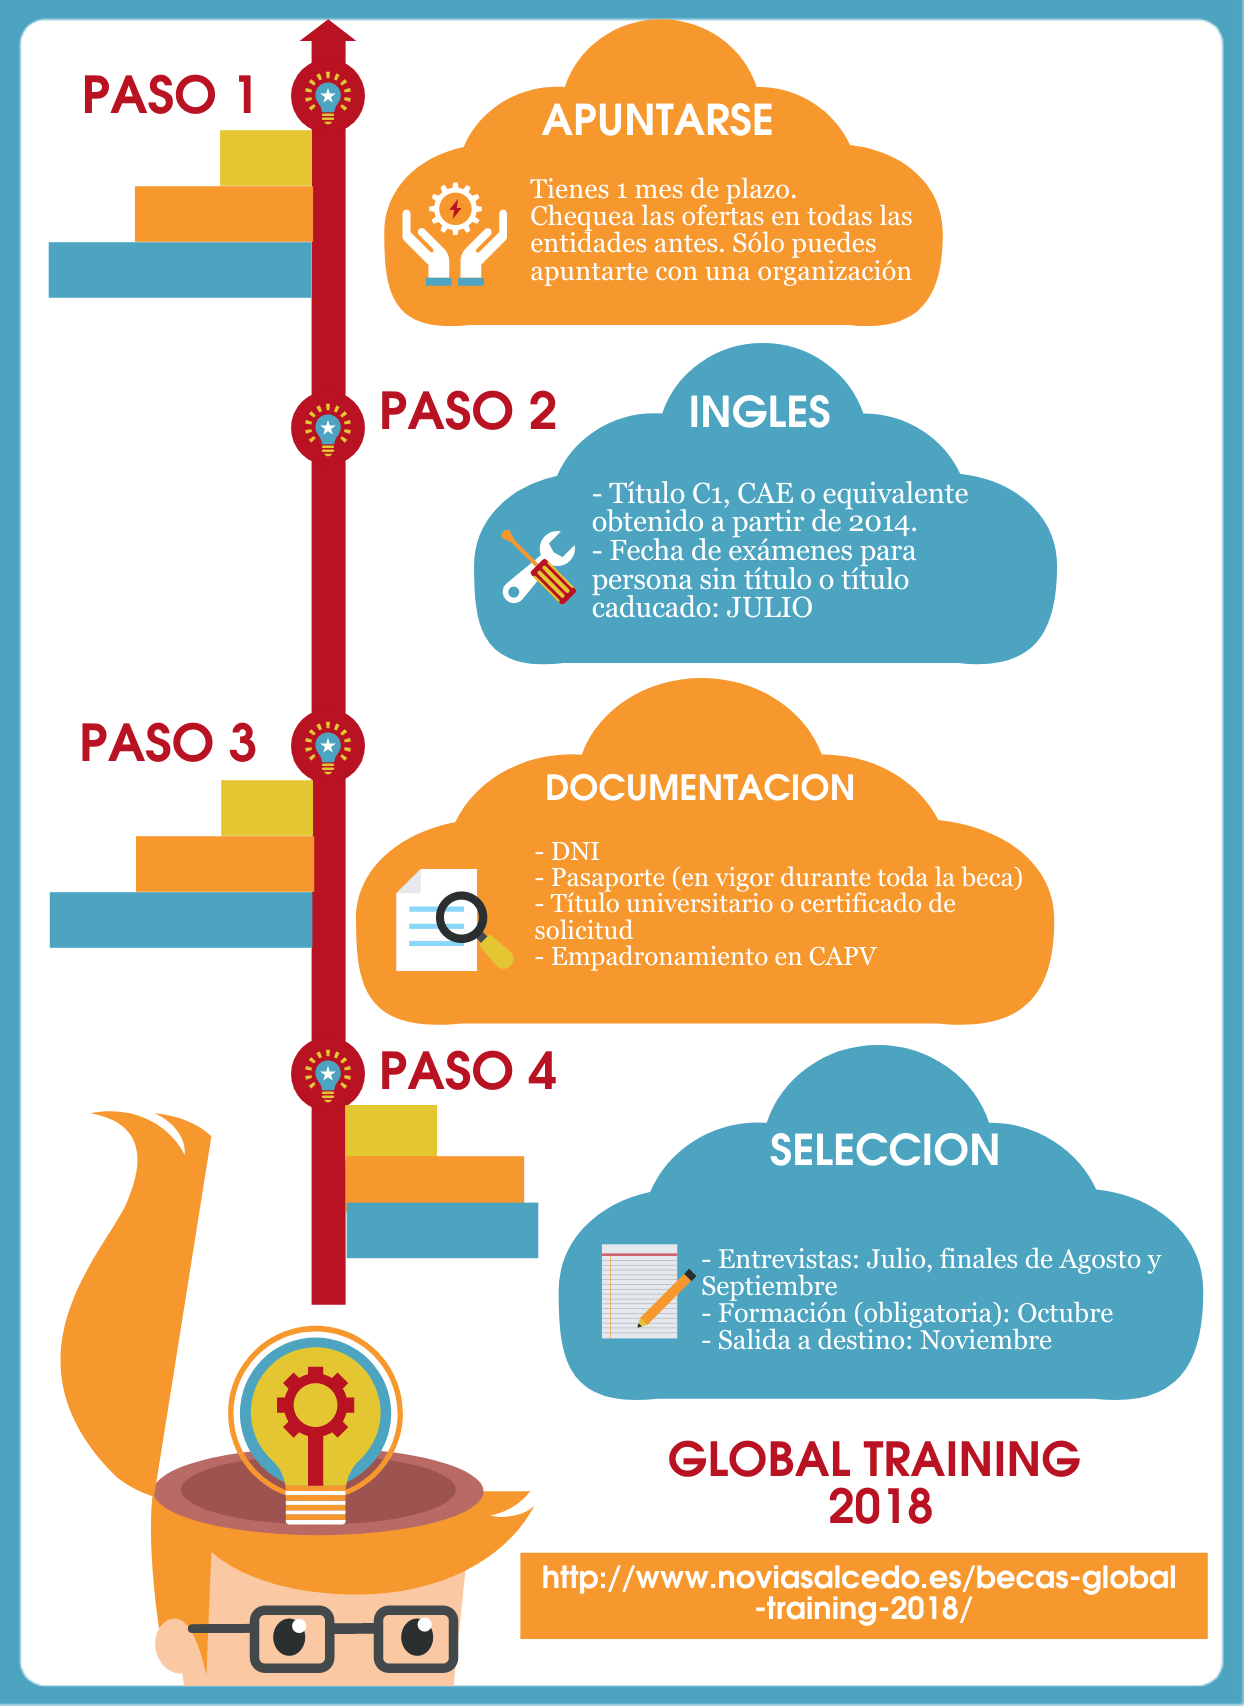 global-training-2018-recomendaciones